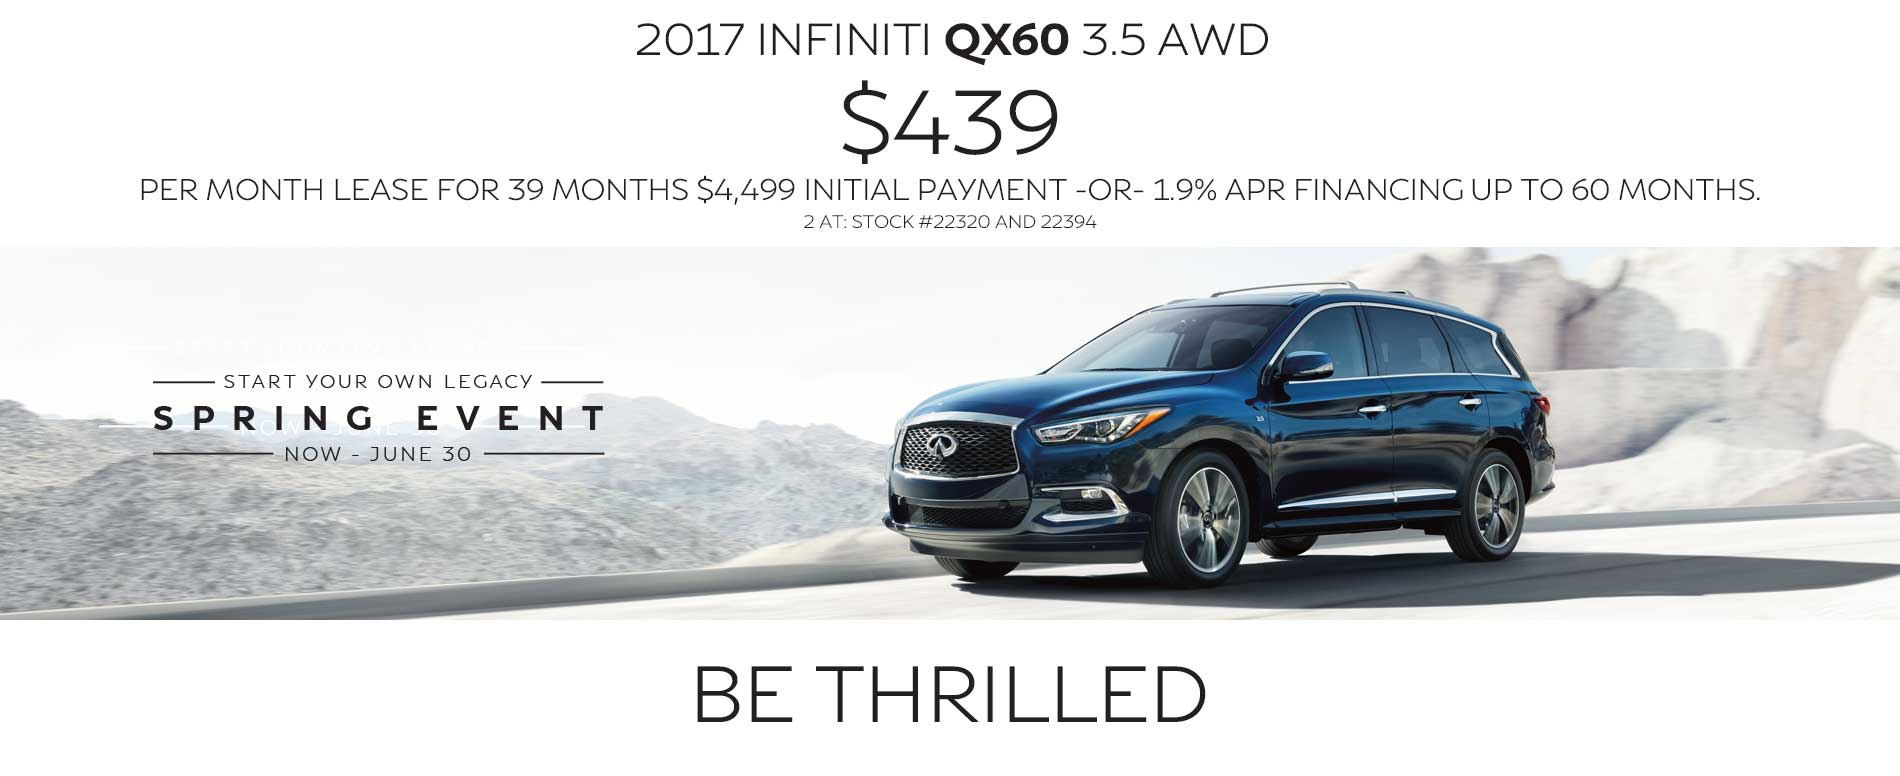 BE thrilled. Lease a 2017 INFINITI QX60 for $439 per month with $4,499 due at signing or 1.9% APR financing up to 60 months.